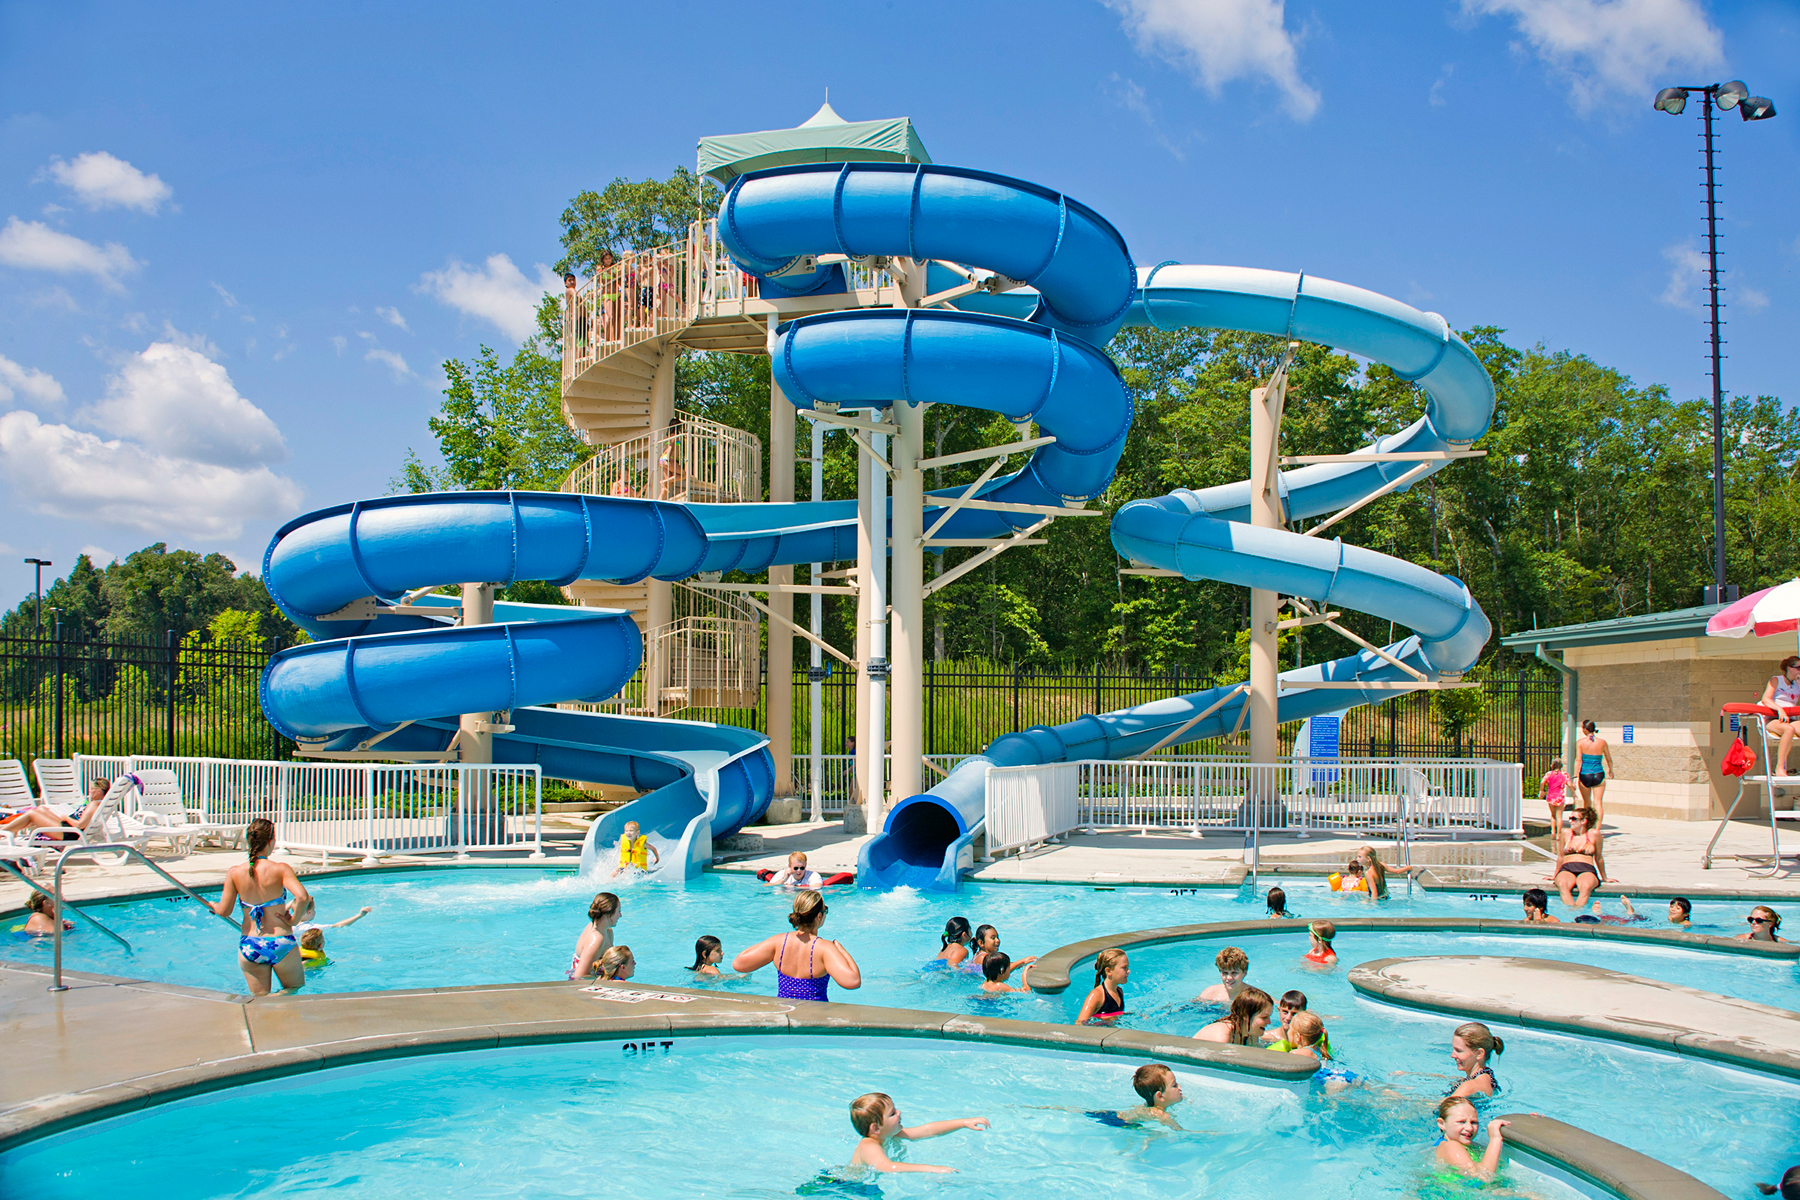 The Frances Meadows Aquatic Center boasts two three-story tall body slides.